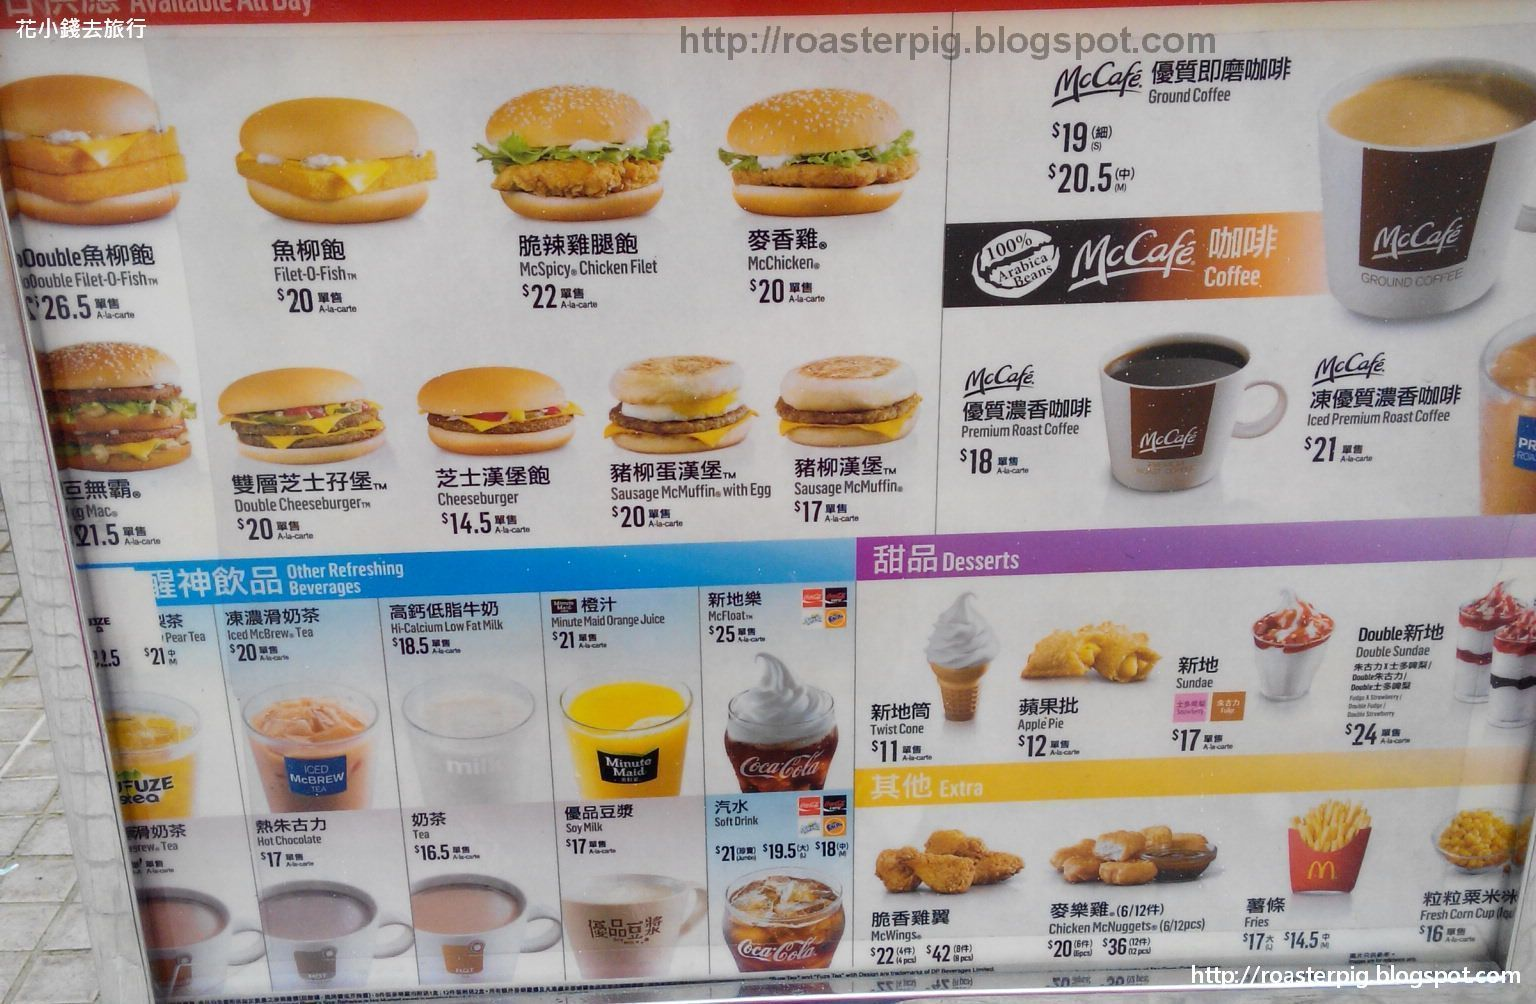 The World's Largest McDonald's Blog. Reviews of promotional, unique, strange and weird McDonald's food from over 60+ countries around the world!